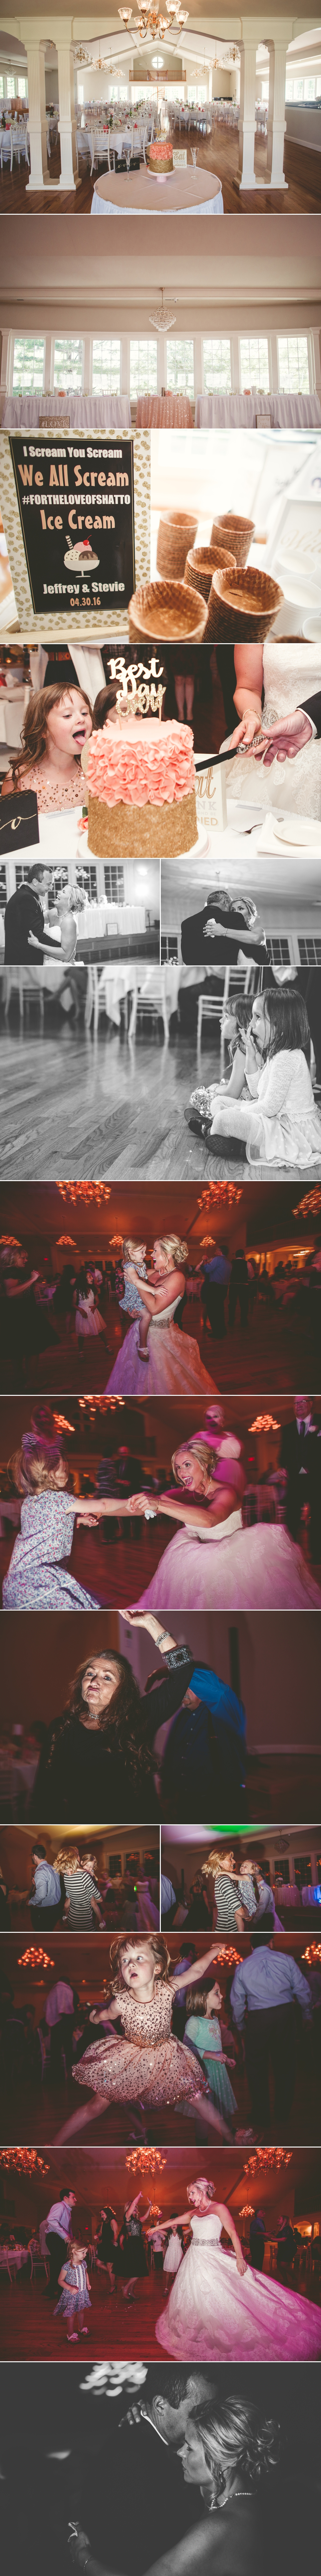 jason_domingues_photography_best_kansas_city_photographer_kc_wedding_hawthorne_house_3